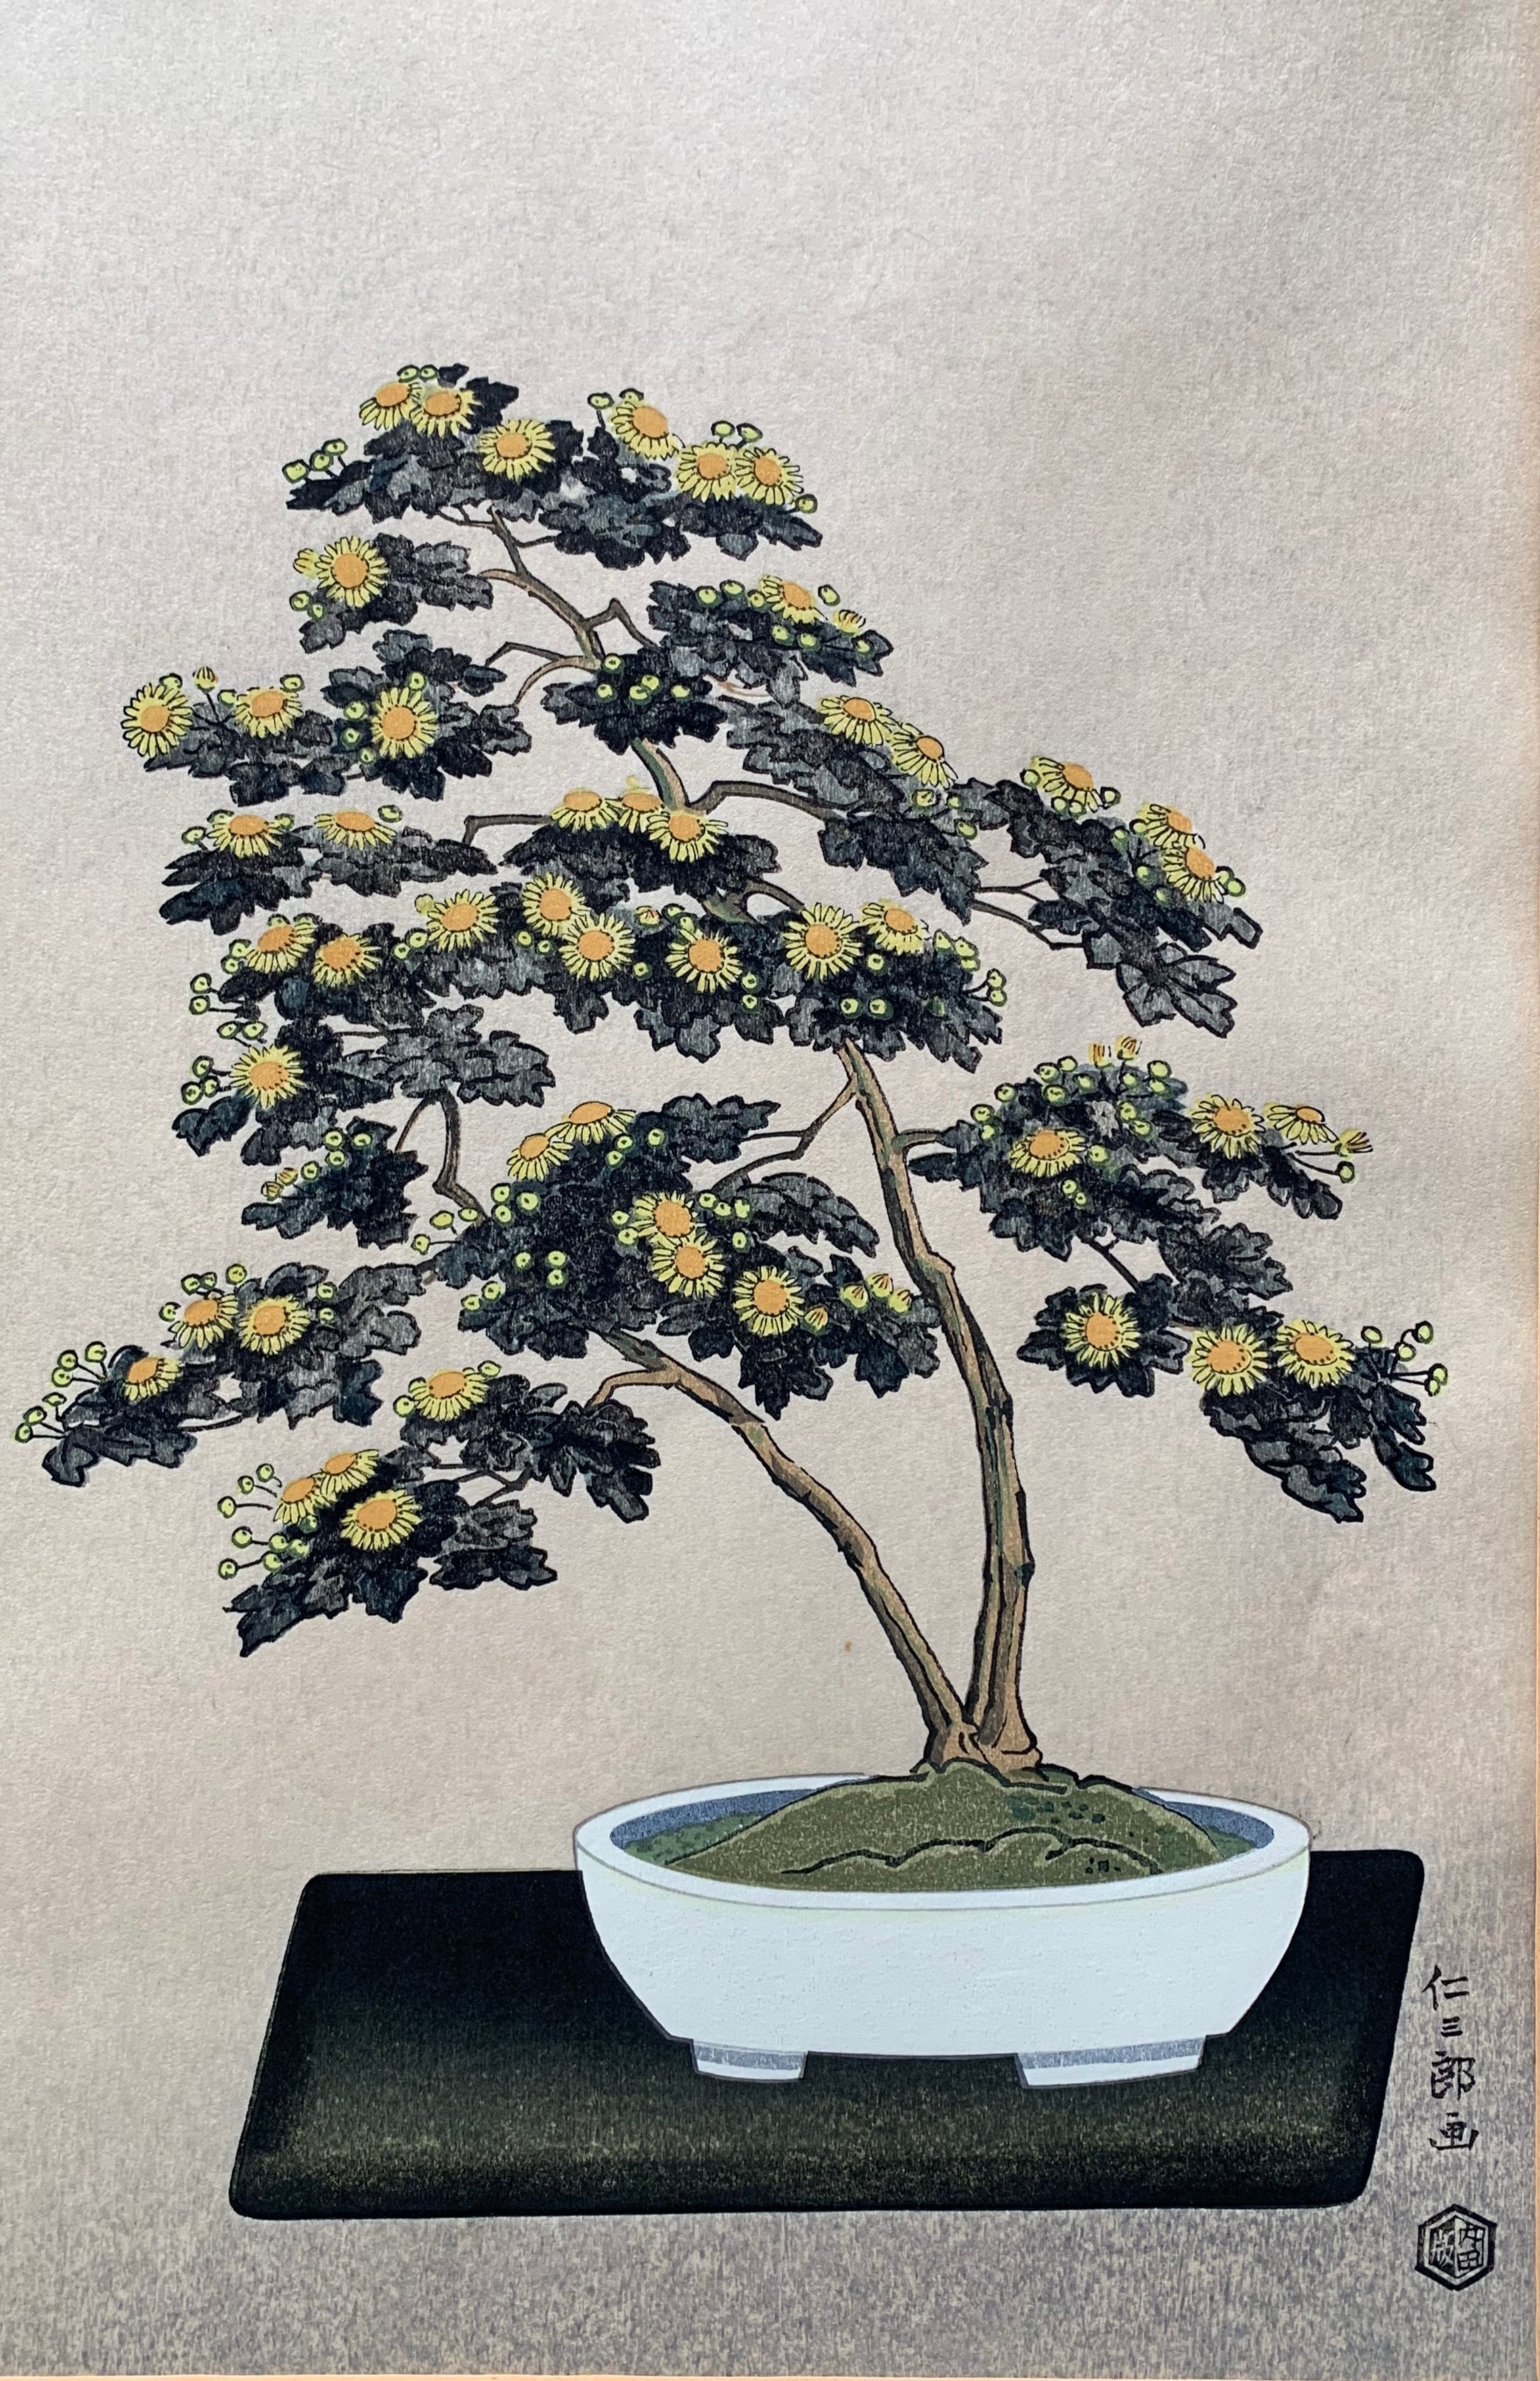 #4026 Potted Chrysanthemum